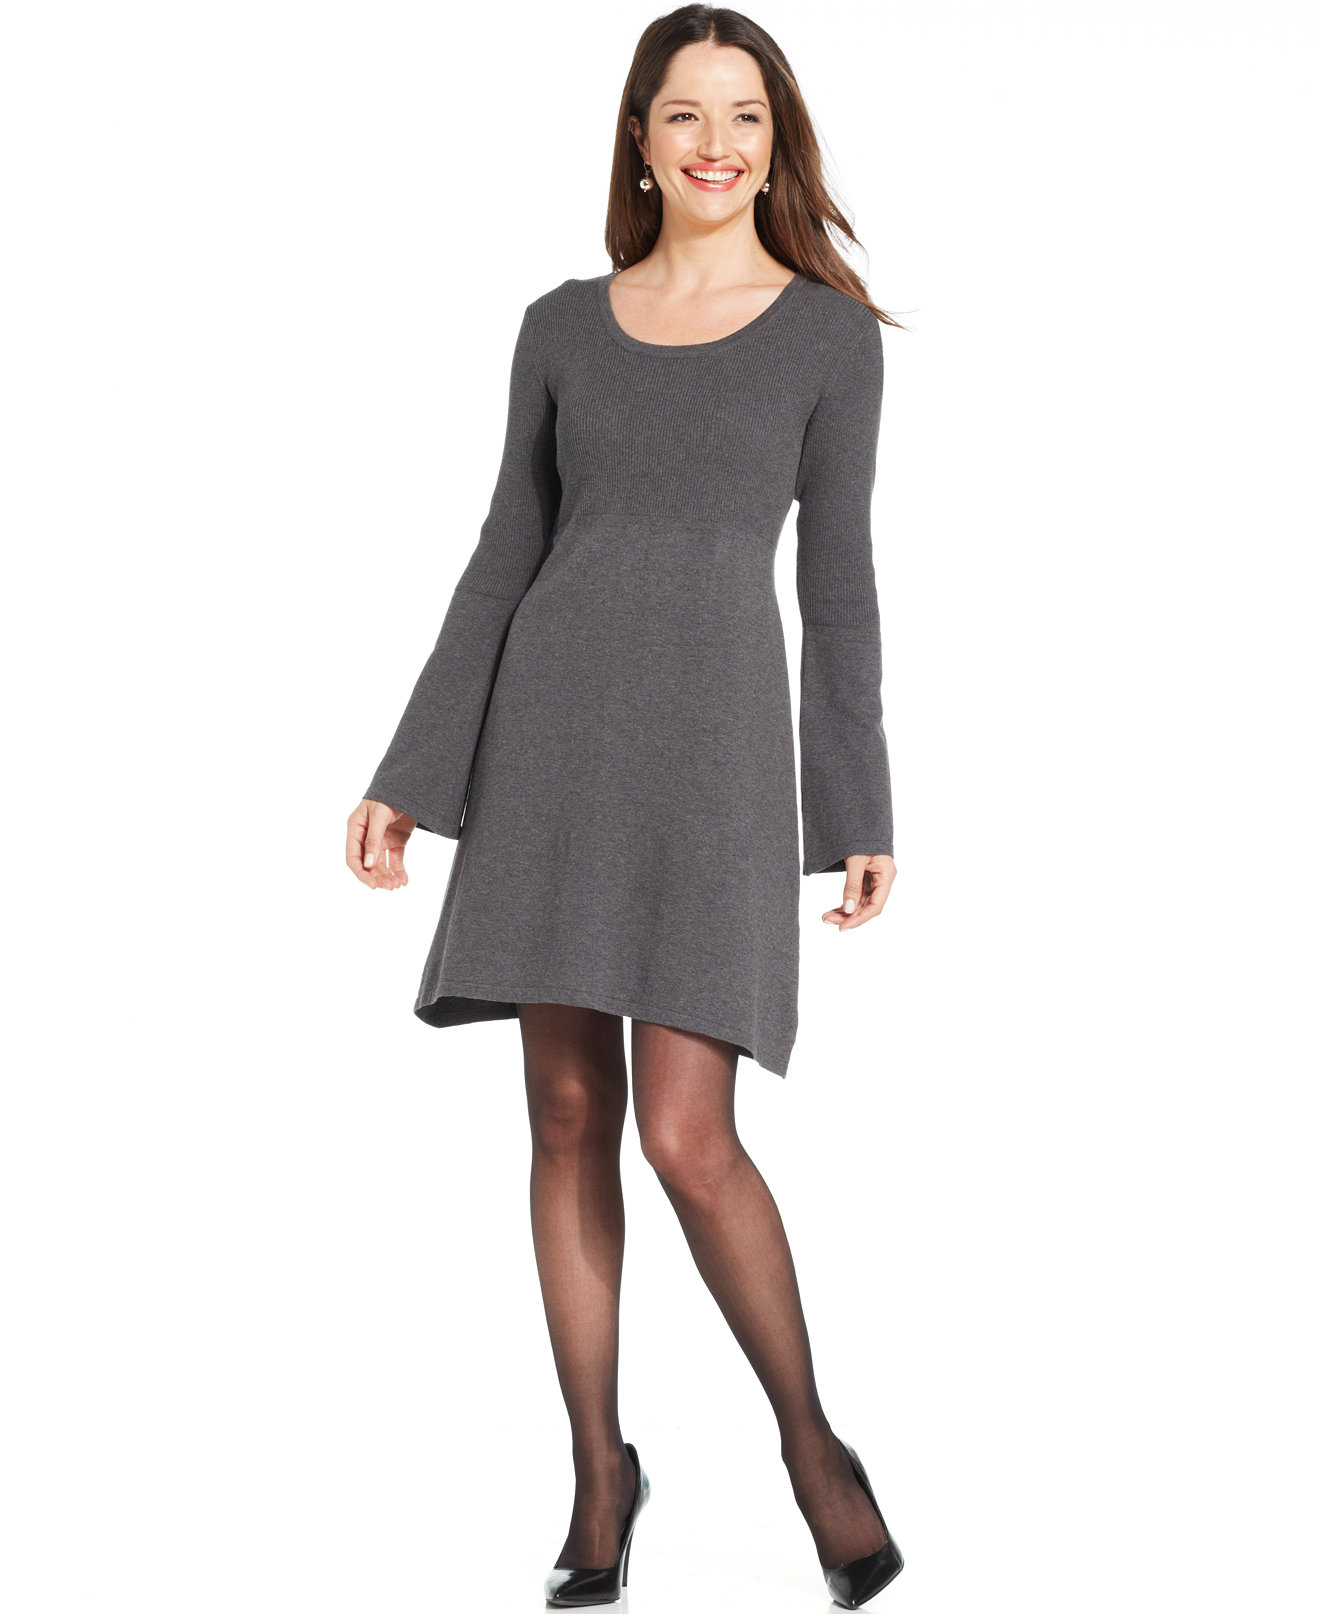 Cocktail Dresses Petite Size With Sleeves 9